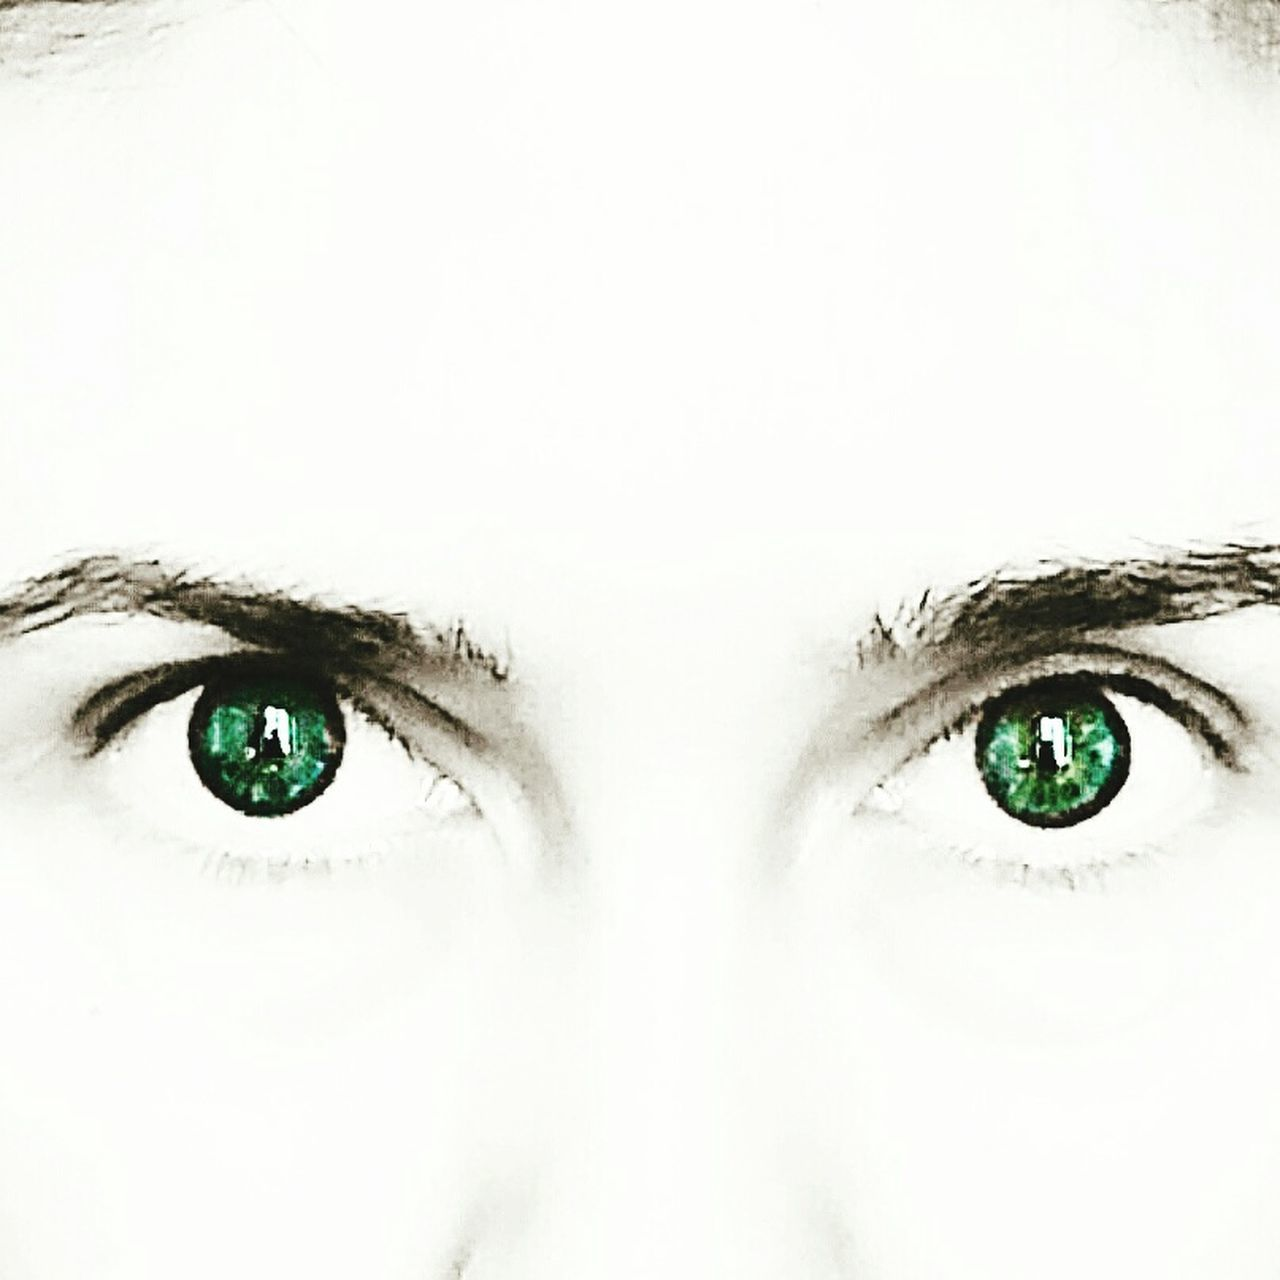 Alessandra Eyes Eyes Are Soul Reflection Eyesblue Friends ❤ Occhi Occhiverdi Occhioni OcchiBlu Occhionibelli Sguardo  Sguardi Sguardoprofondo Sguardi Intensi Sguardo  Look Looking At Camera Looking Look Me In The Eyes Looking Away Look Portrait Of A Woman Portrait Of A Friend Portrait Portrait Photography